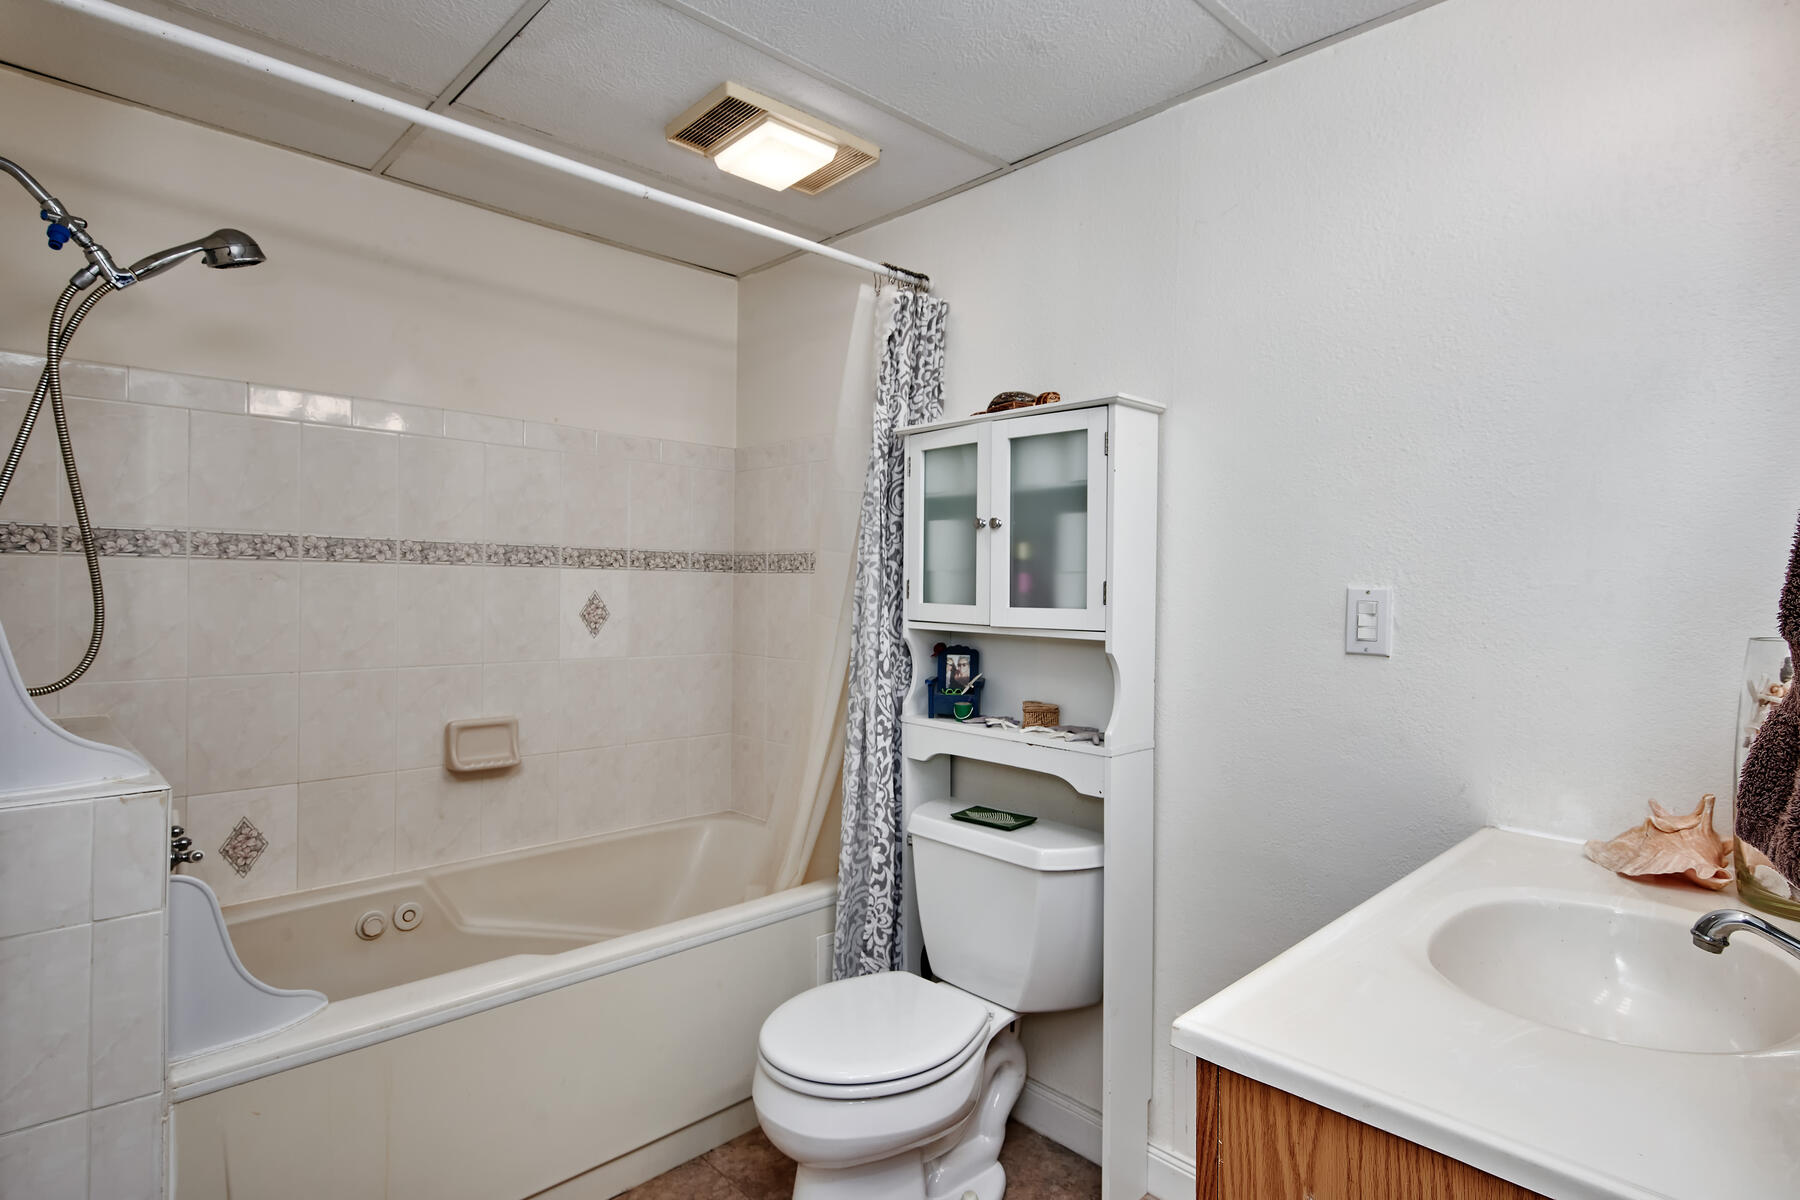 Jetted Soaking Tub with Shower in Lower Level